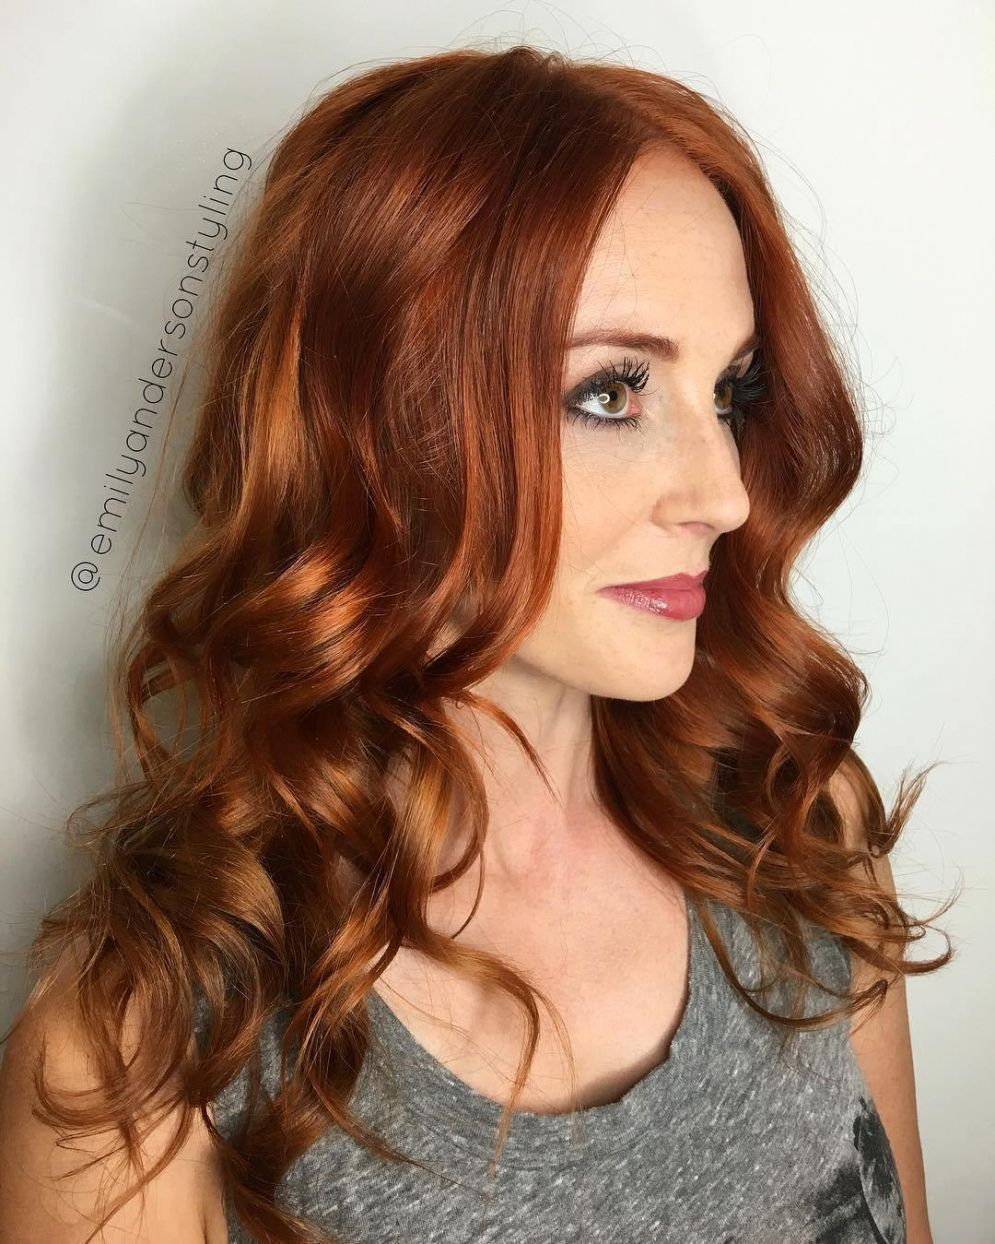 Red Hair Colors For Olive Skin Best Hair Color For Summer Check More At Http Frenzyhairstudio Co Hair Color Auburn Red Hair Olive Skin Skin Tone Hair Color